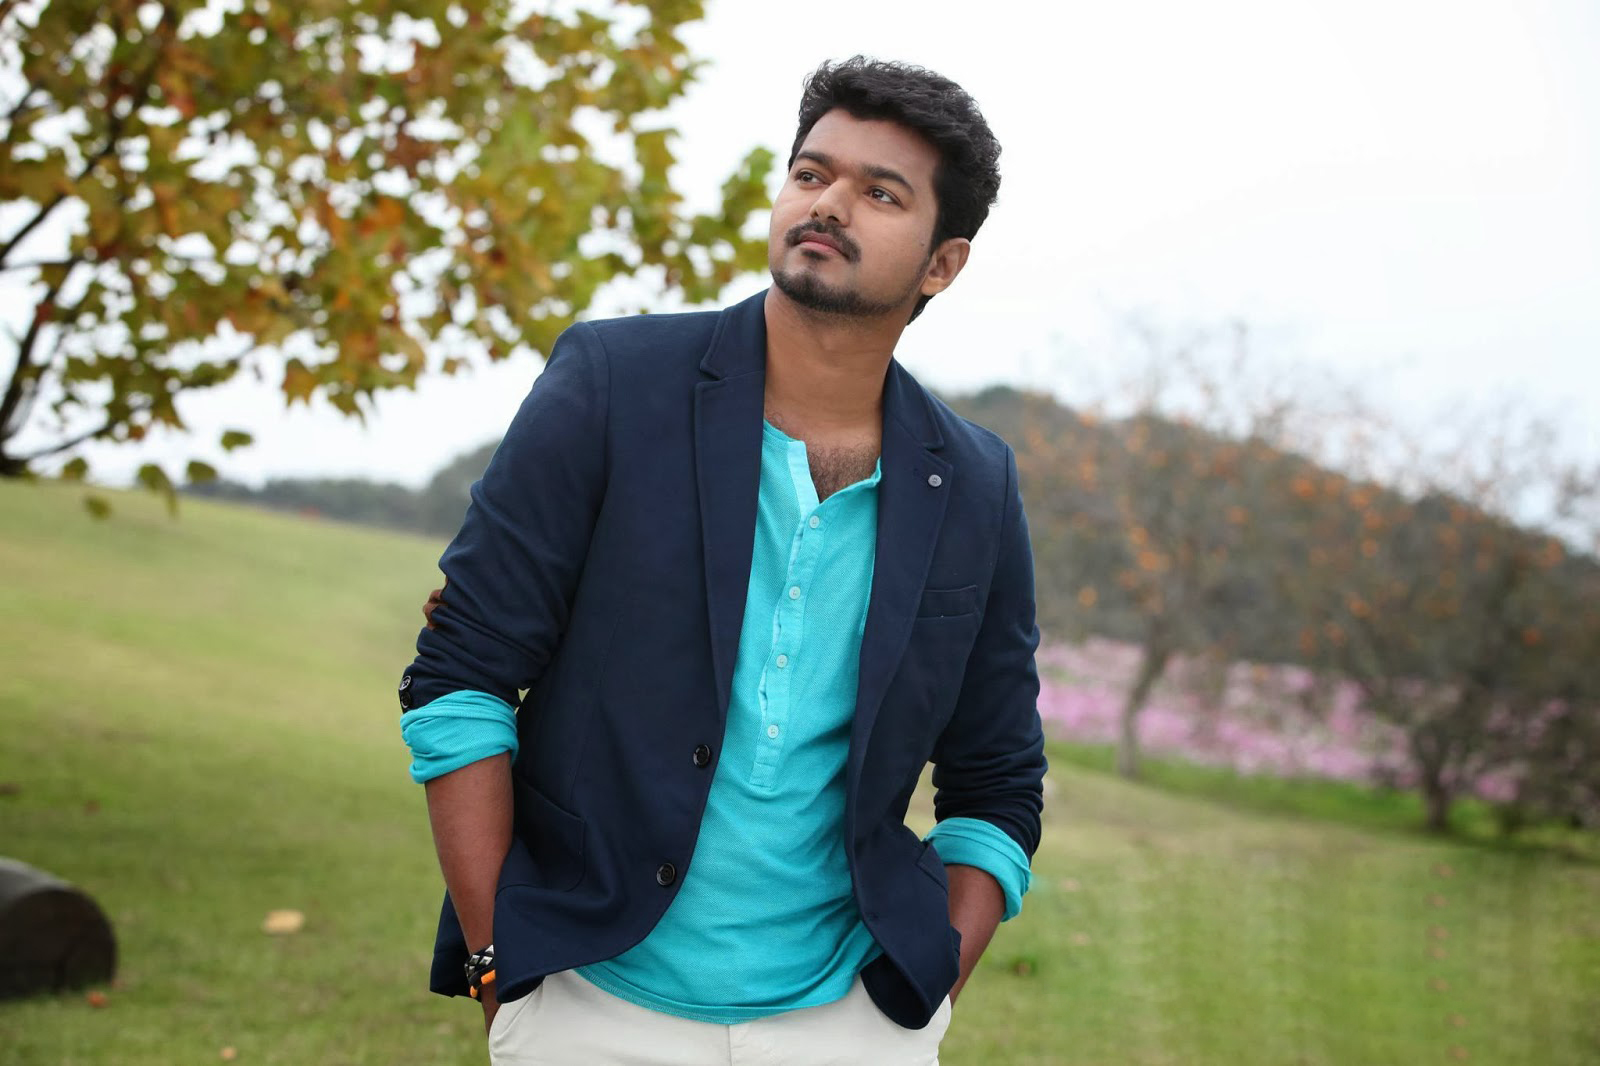 Actors Wallpapers Download Free: Vijay Images, Photos, Pics & HD Wallpapers Download